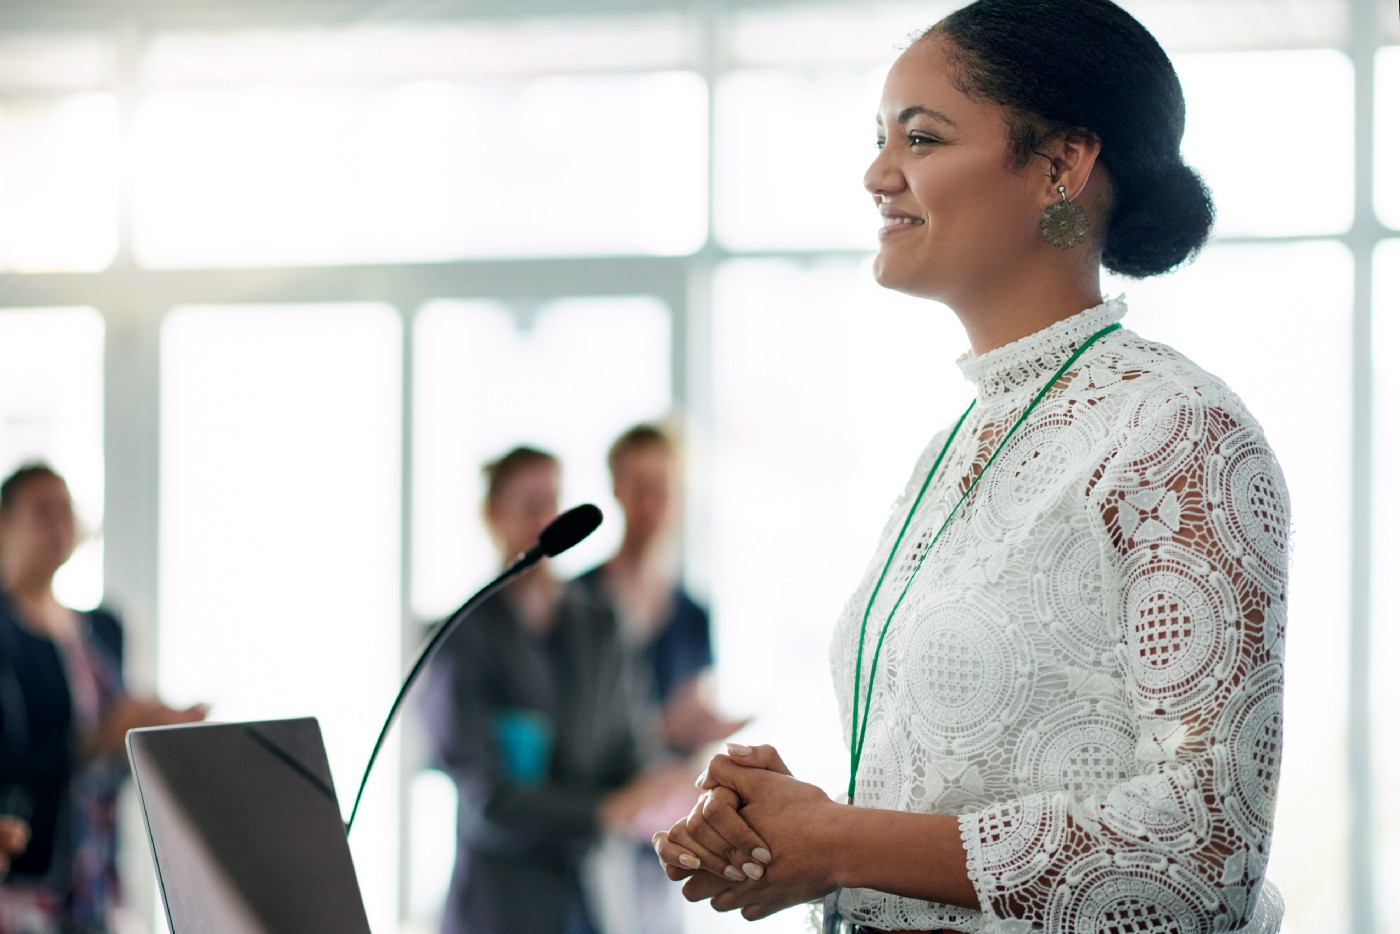 A young businesswoman confidently delivers a presentation at a conference